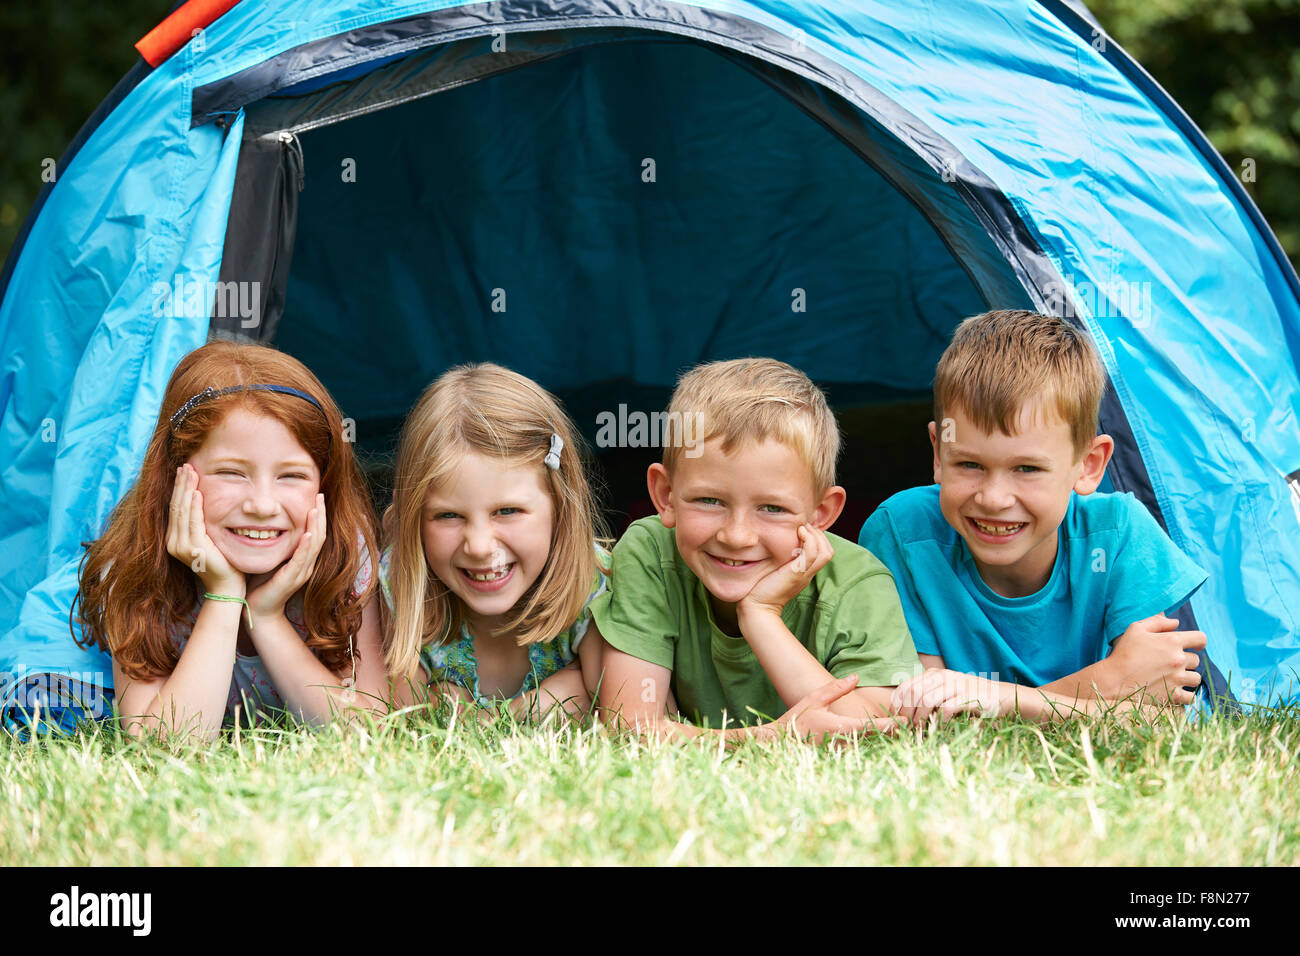 Group Of Children On Camping Trip Together - Stock Image